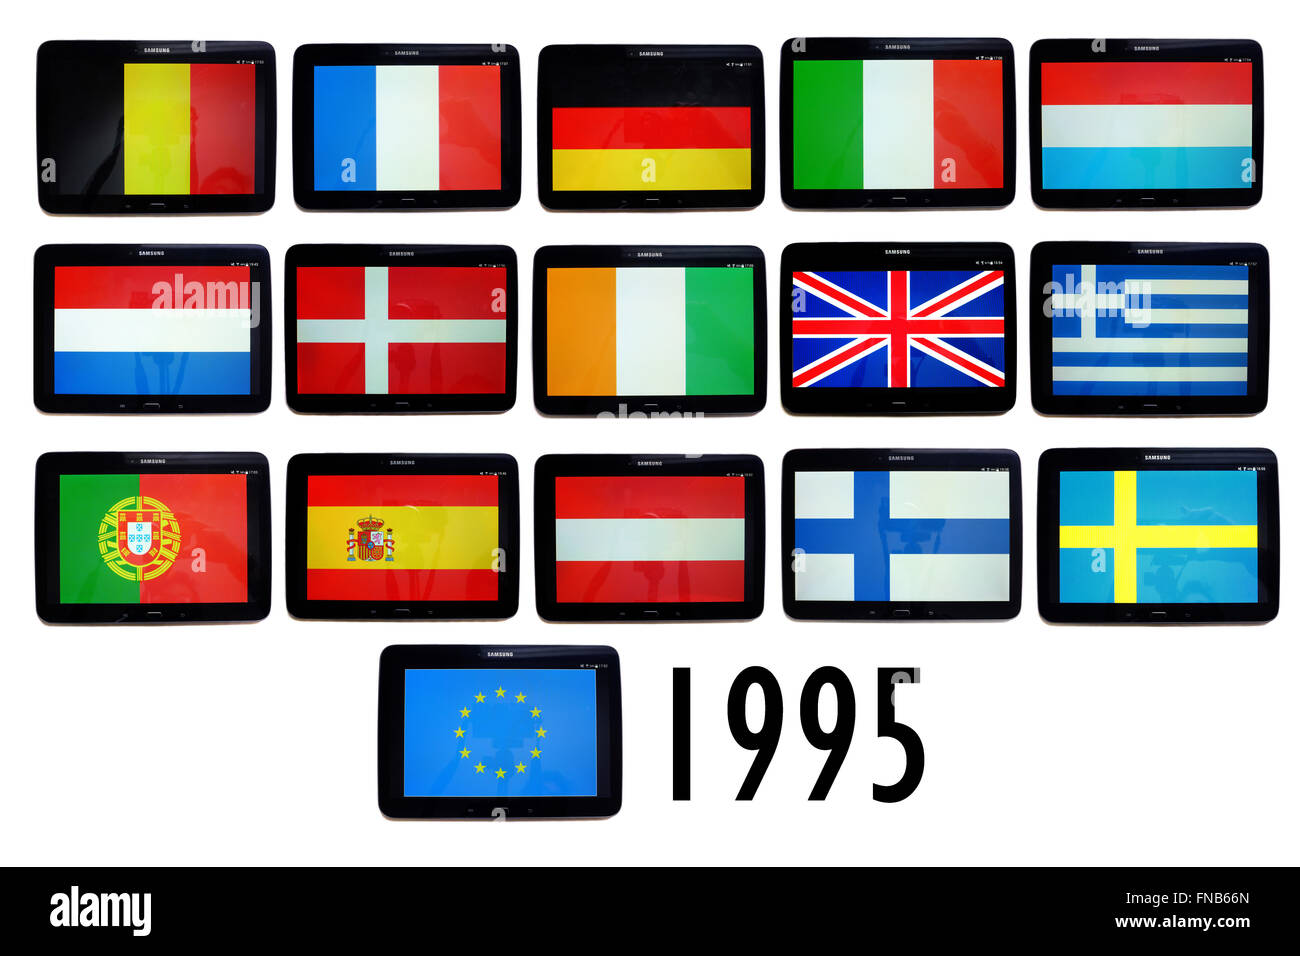 The flags of the member countries of the European Union as of 1995 displayed on the screens of tablets. - Stock Image